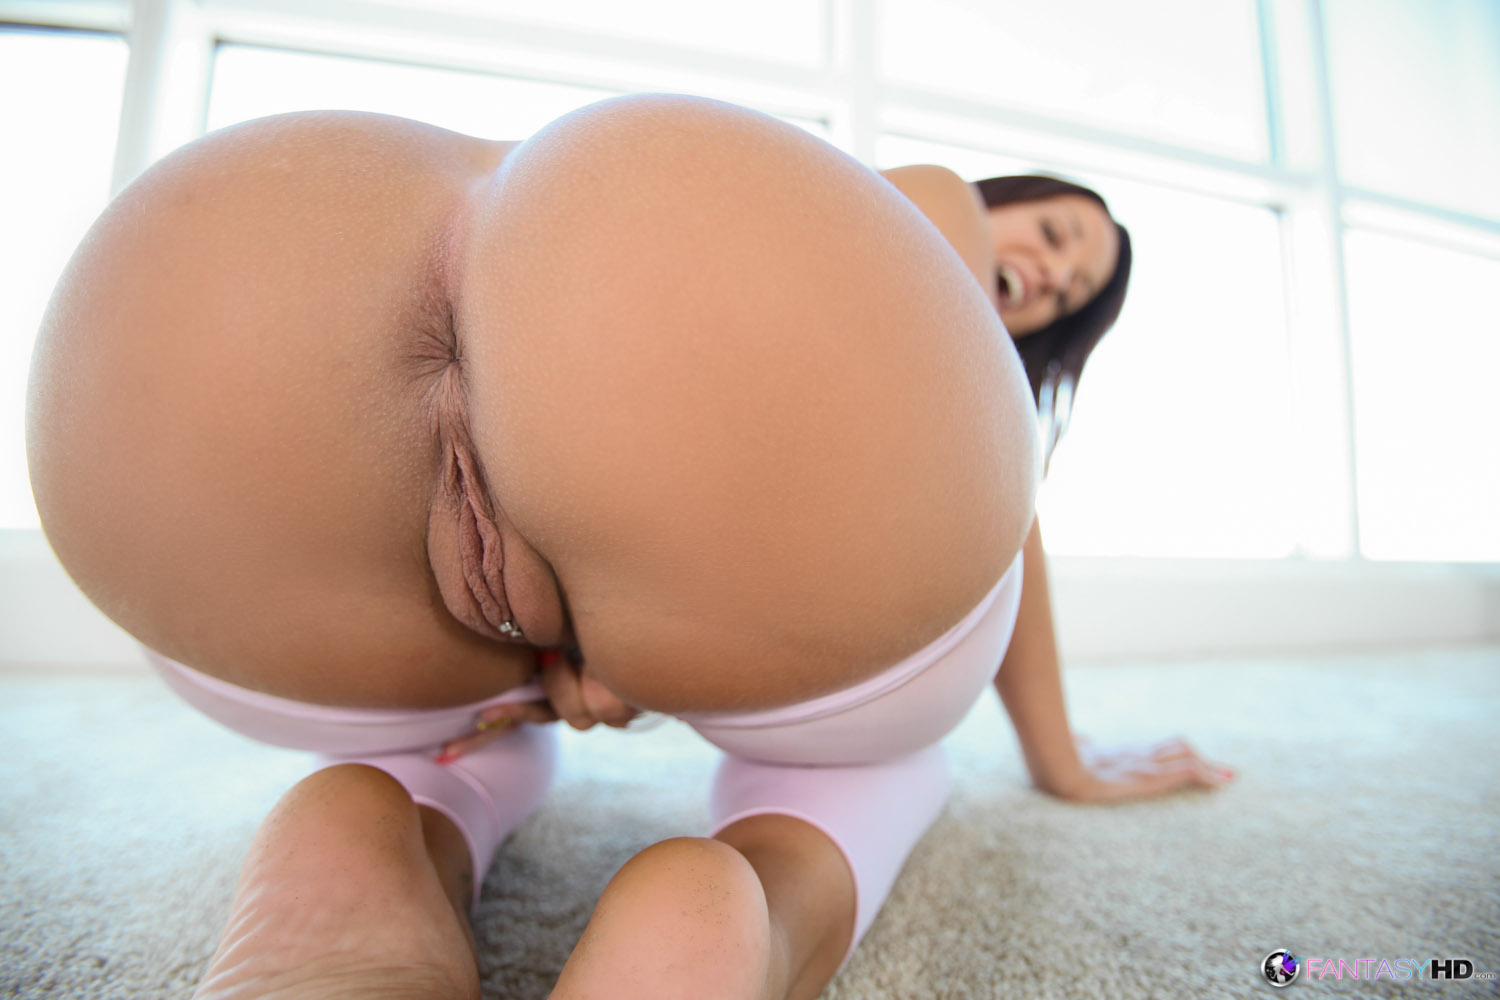 Big Ass Jada Stevens Fucked By The Masseur - Greatnass-9825